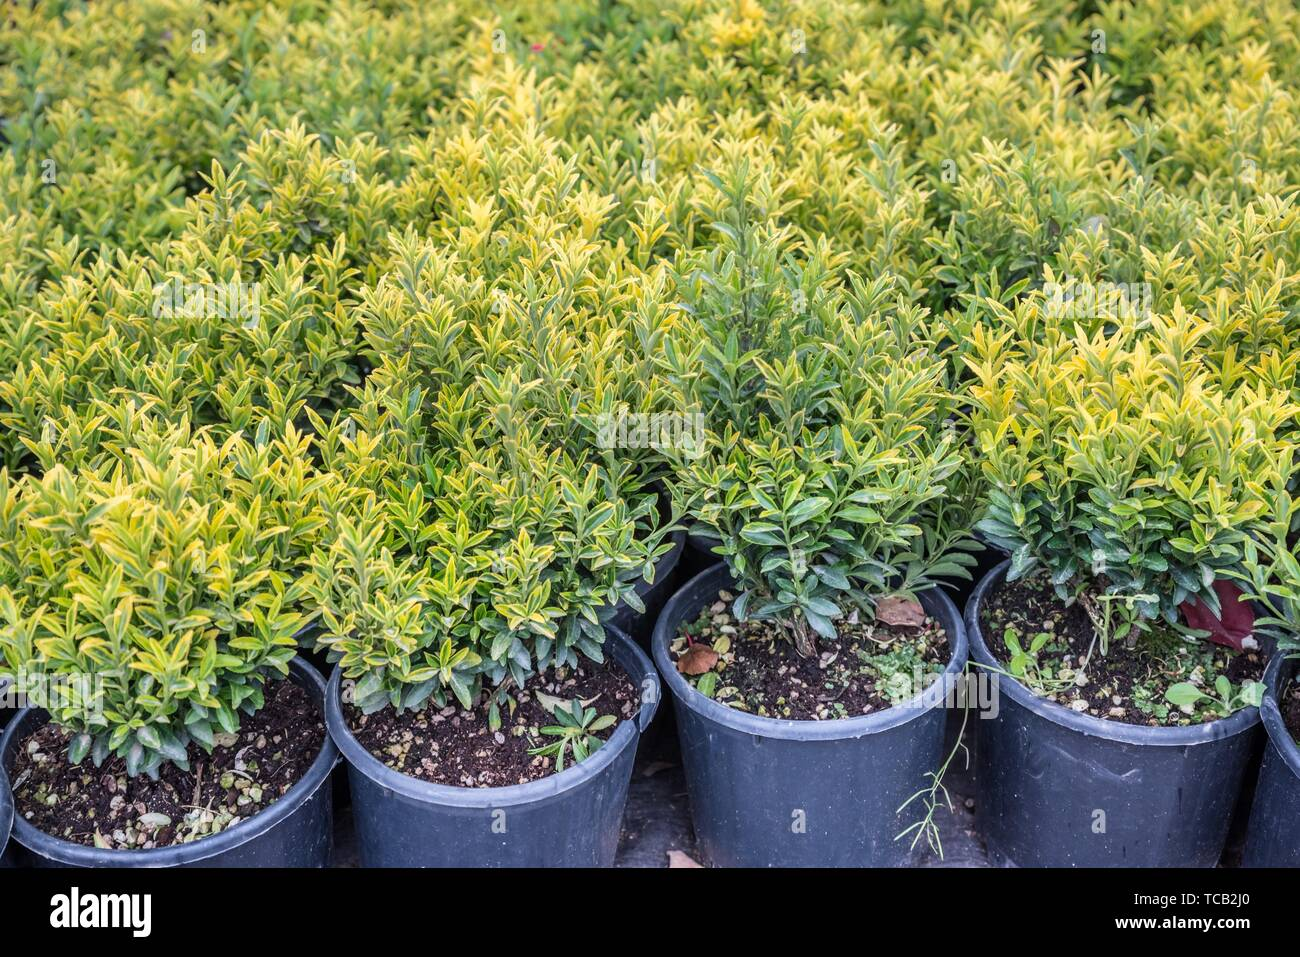 Fortune spindle (Euonymus fortunei) in garden. Detail of emerald golden leaves of winter creeper. Hedge of the Golden spindle tree. - Stock Image